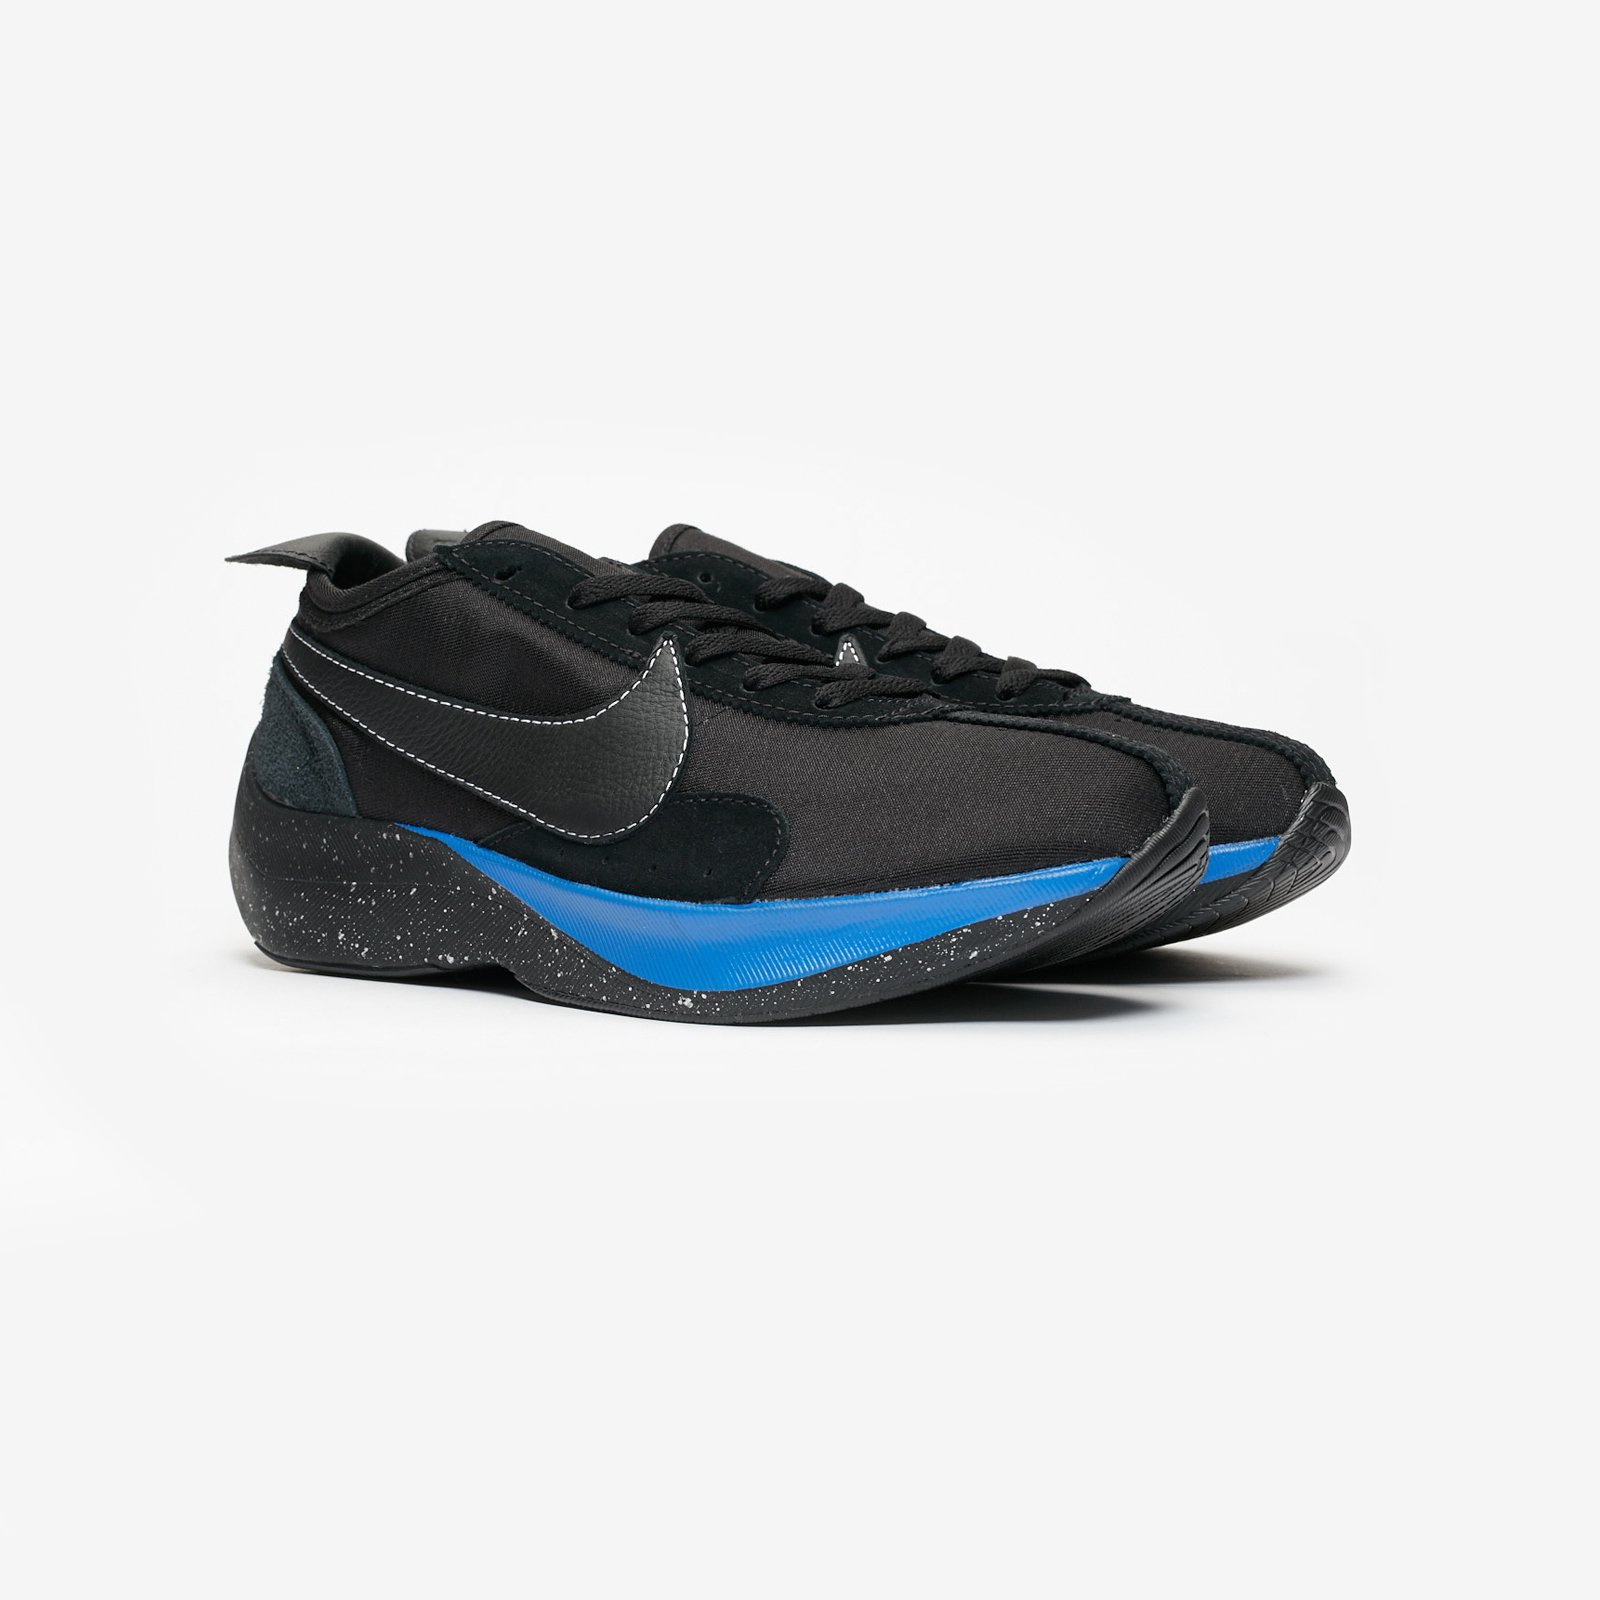 Nike Moon Racer QS - Bv7779-001 - Sneakersnstuff  c9a00f327